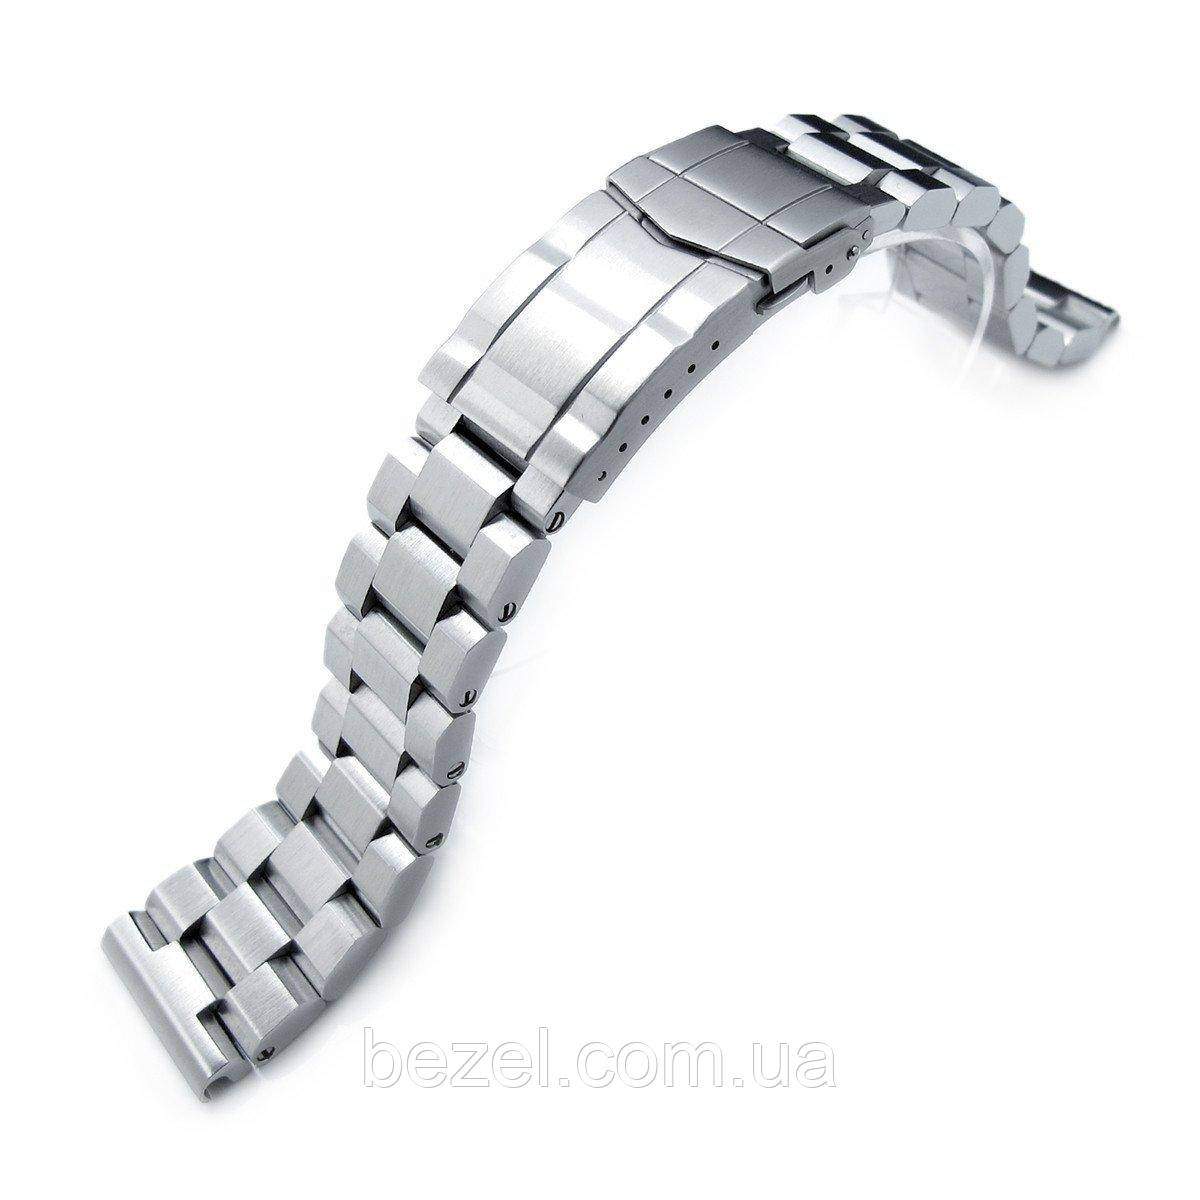 21.5mm Hexad Oyster 316L SS Watch Band for Seiko Tuna, Submariner Clasp Brushed